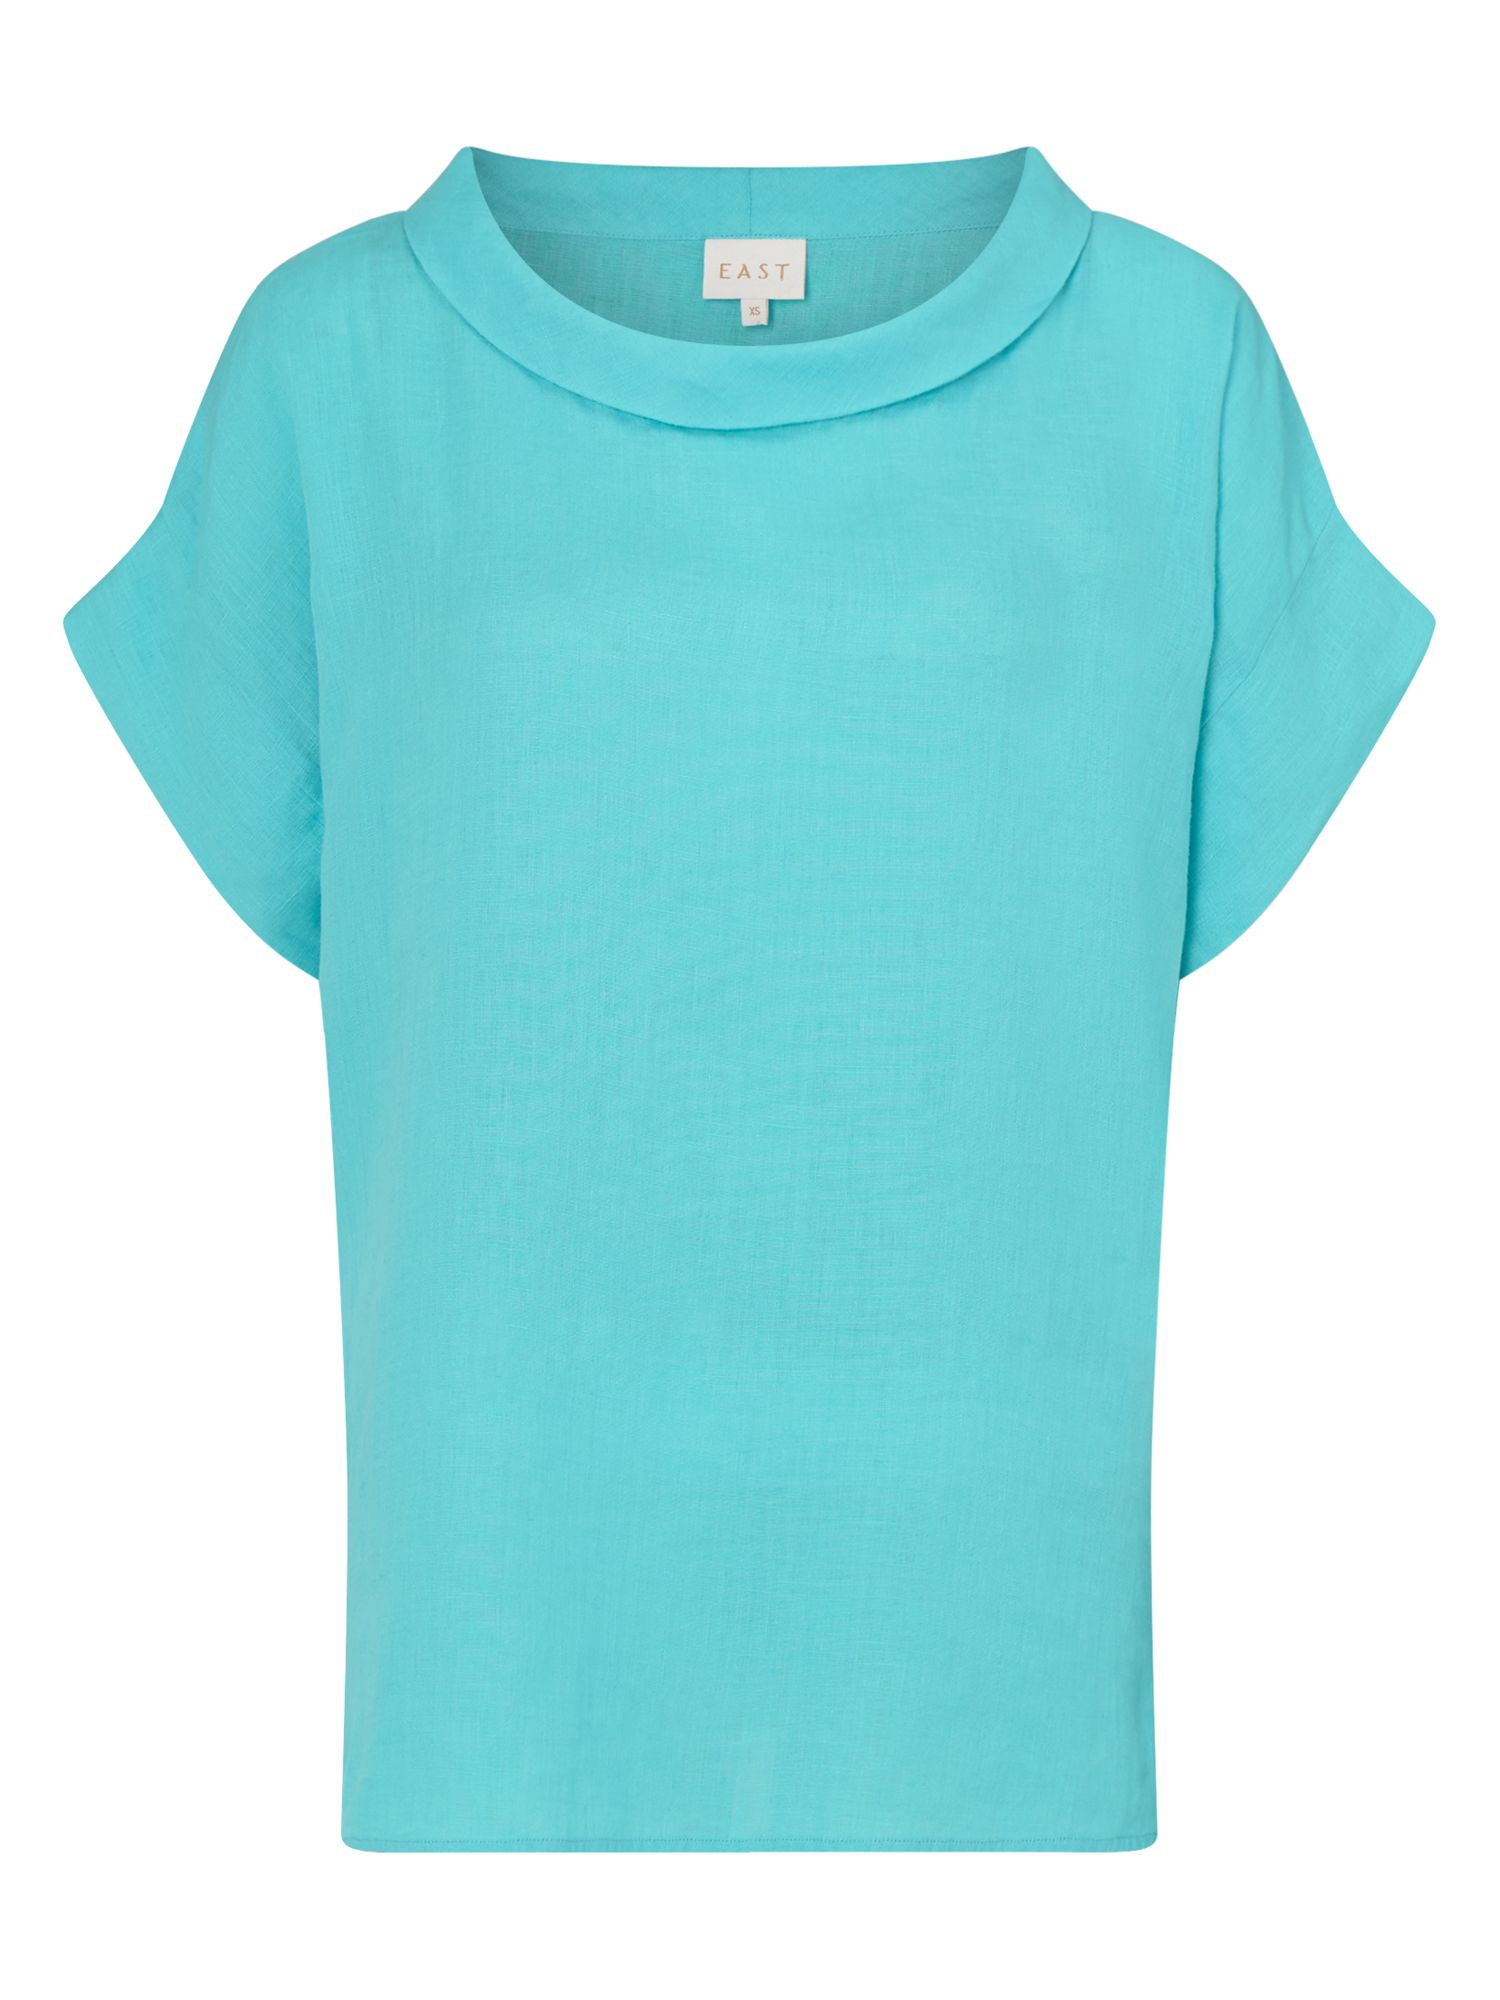 East Bardot Neck Top, Blue